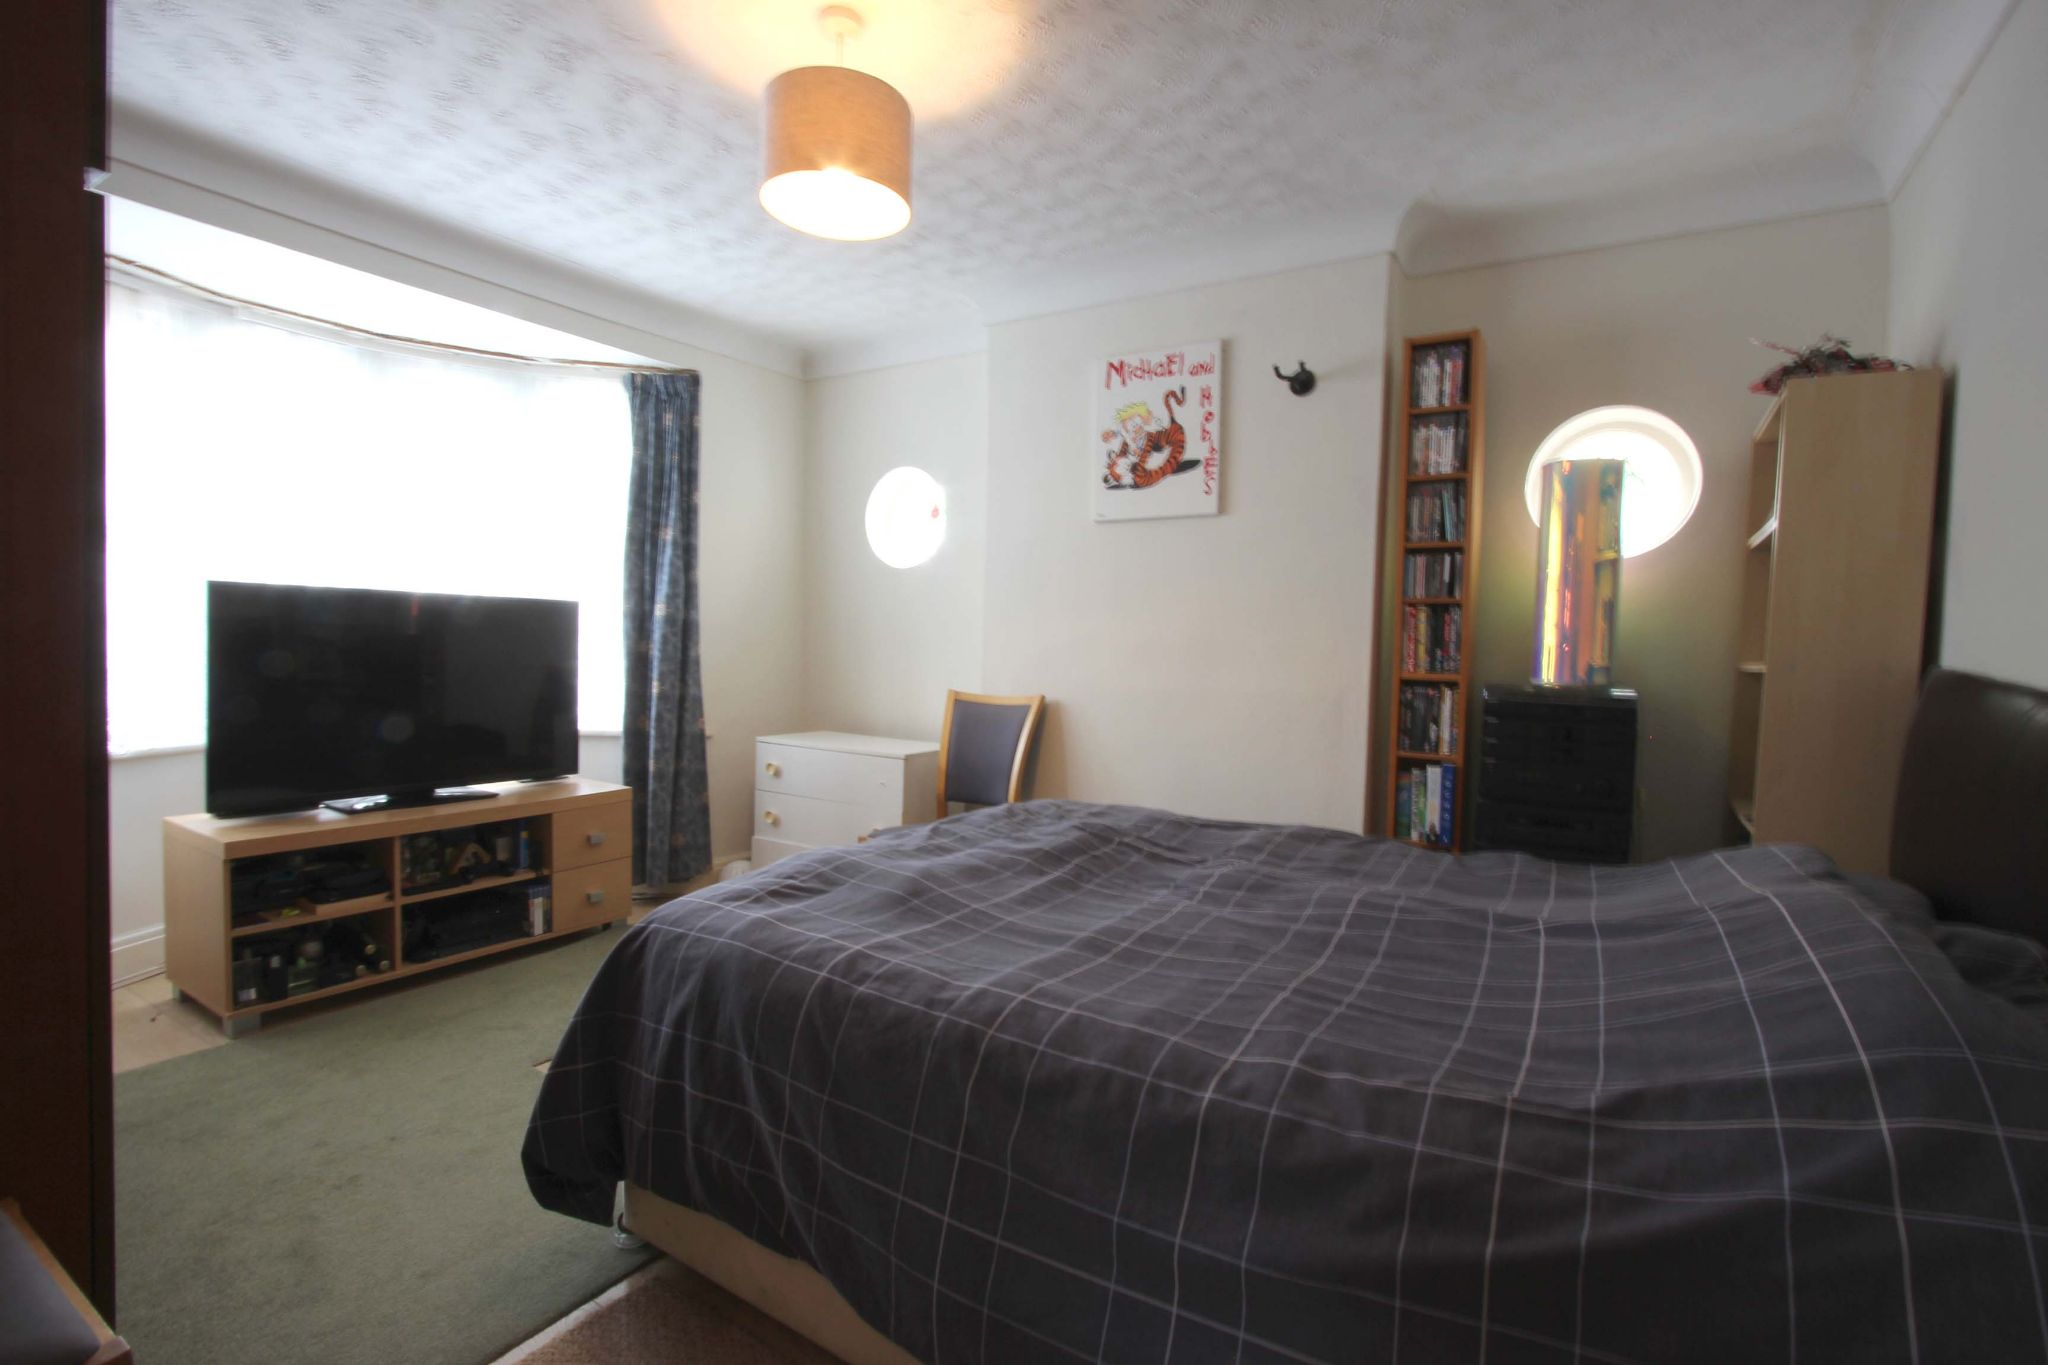 4 bedroom chalet house SSTC in Potters Bar - Photograph 7